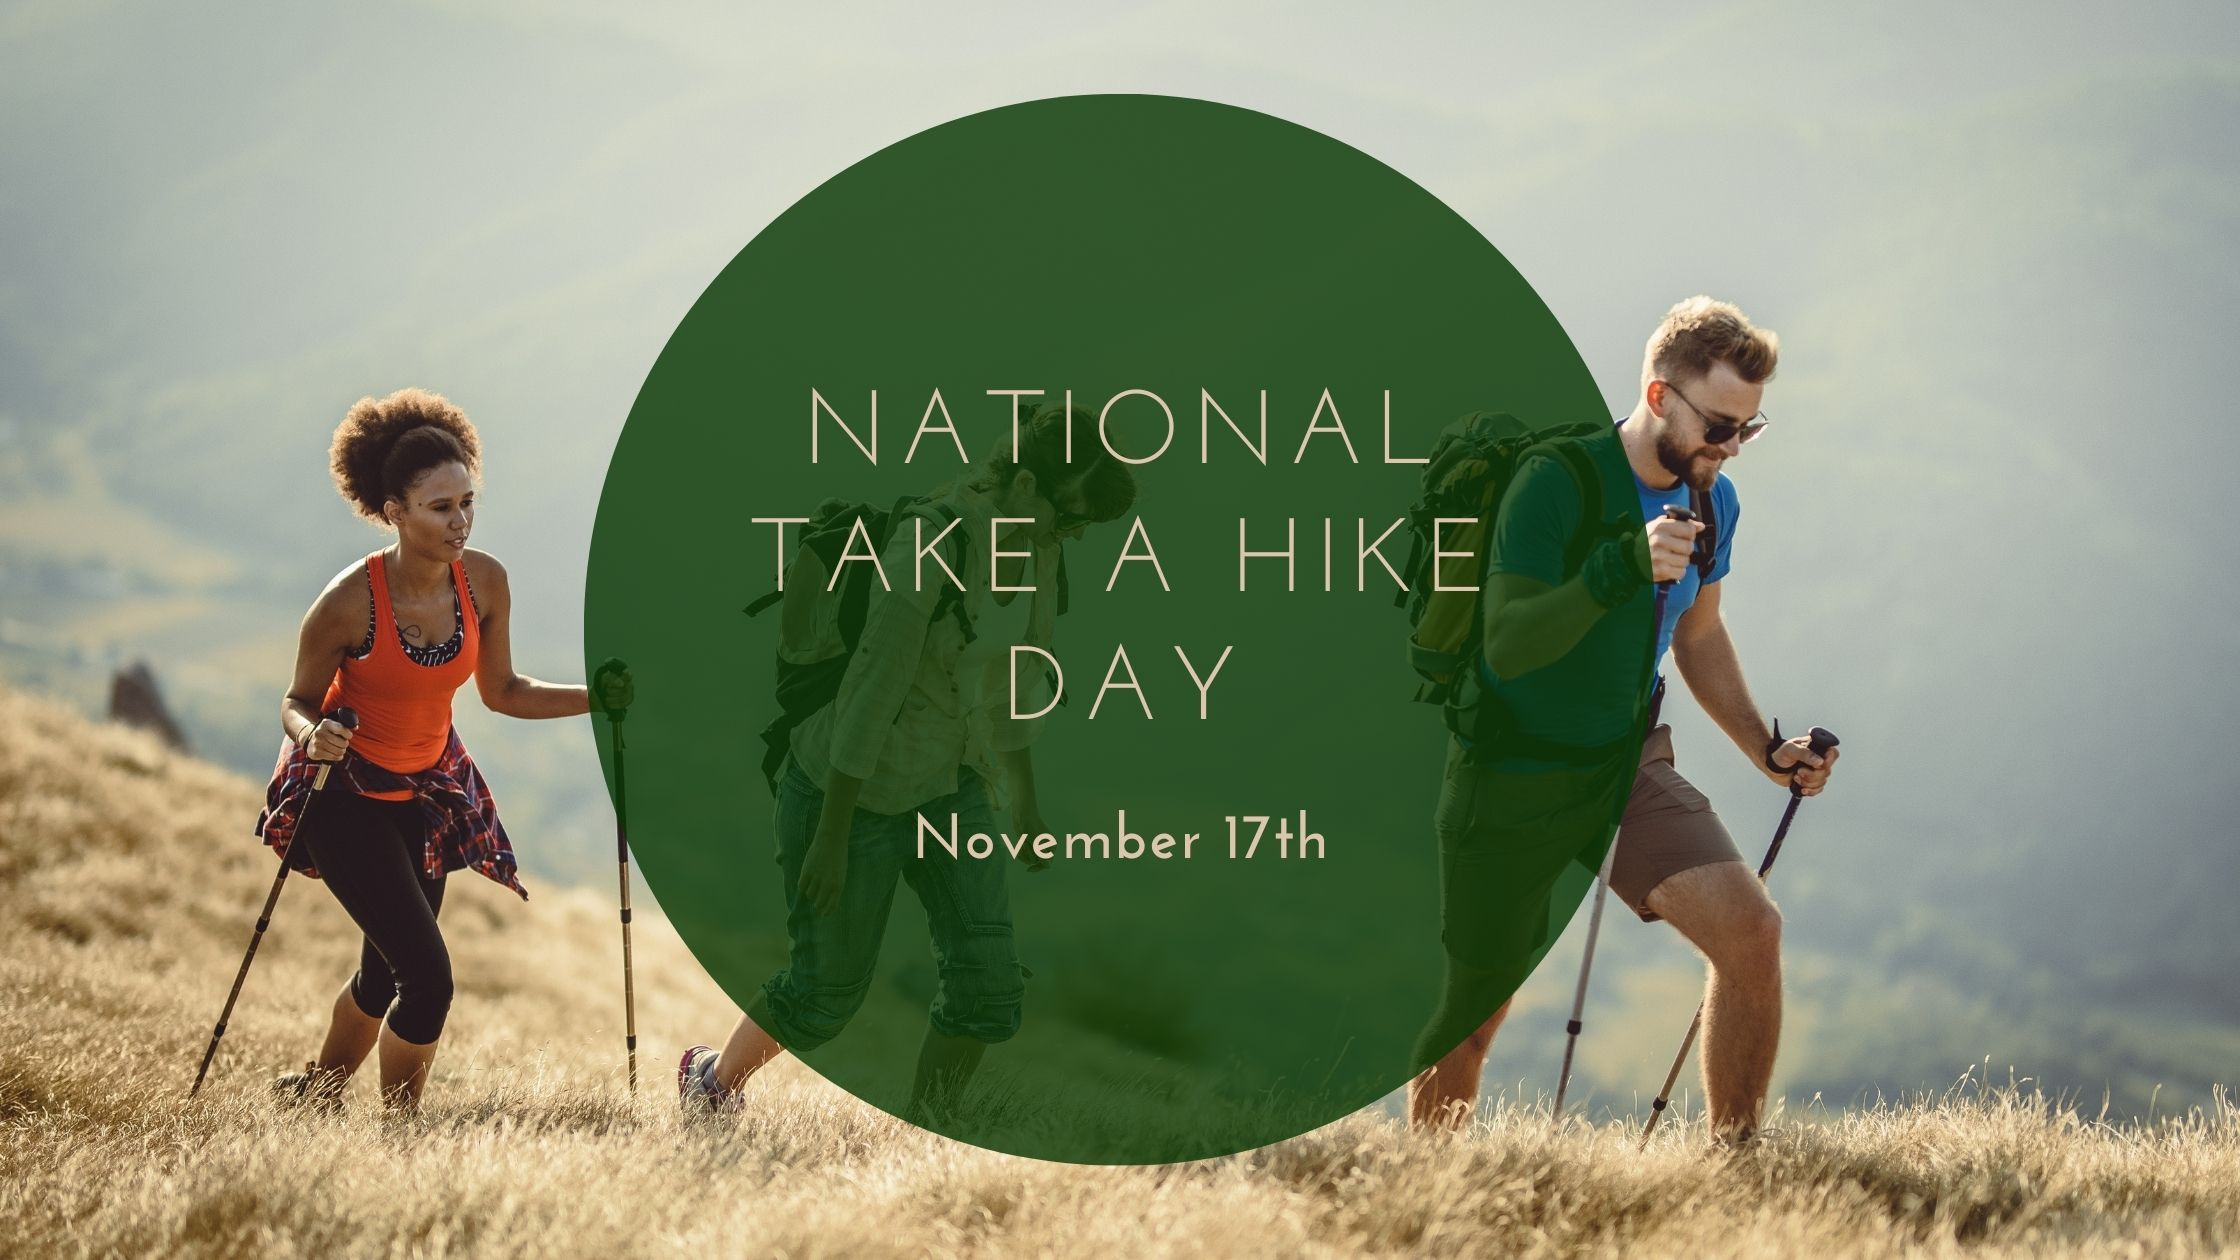 It's National Take a Hike Day - Let's Celebrate!